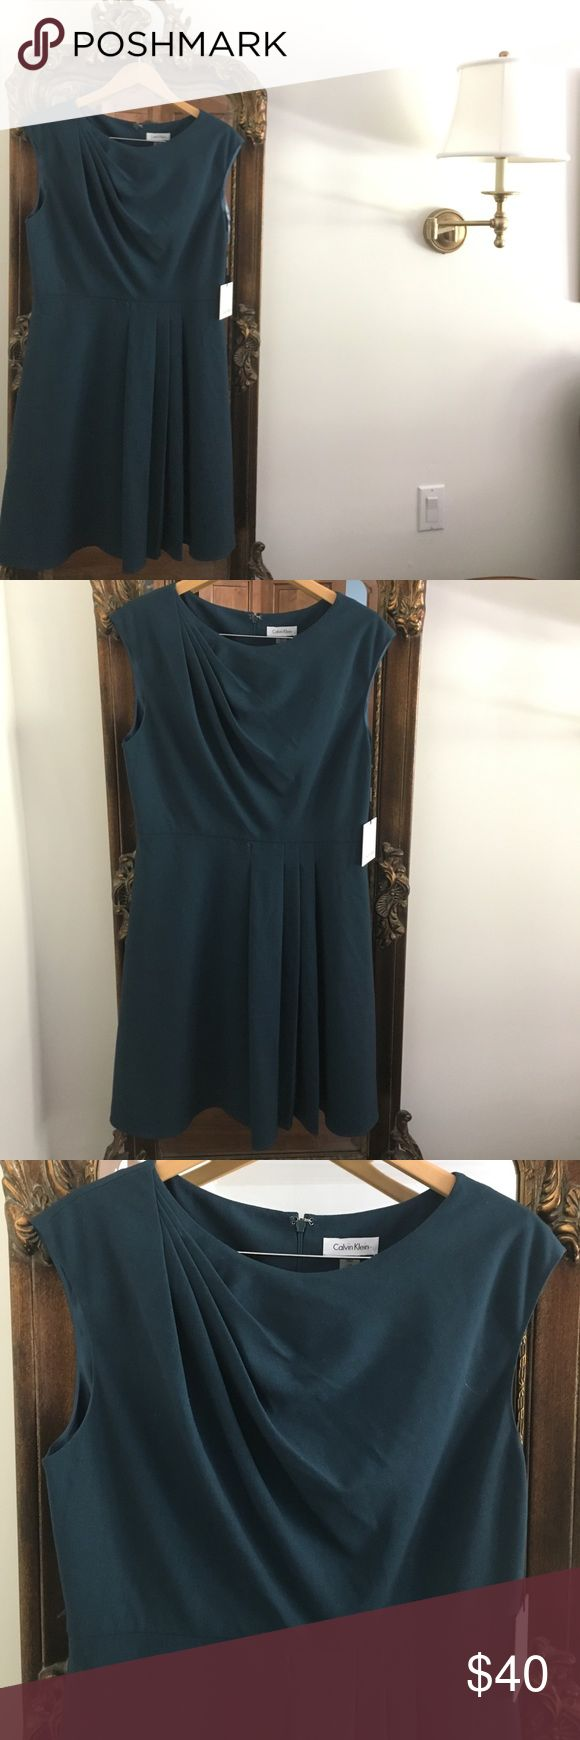 Calvin Klein tailored dress Perfect for work! Has a really unique fit and flair fit for a tailored dress. Very very flattering! Never worn and still has the tags. Beautiful dealing detail and subtle pleating at the skirt. The color is a rich, jewel toned, deep turquoise. Calvin Klein Dresses